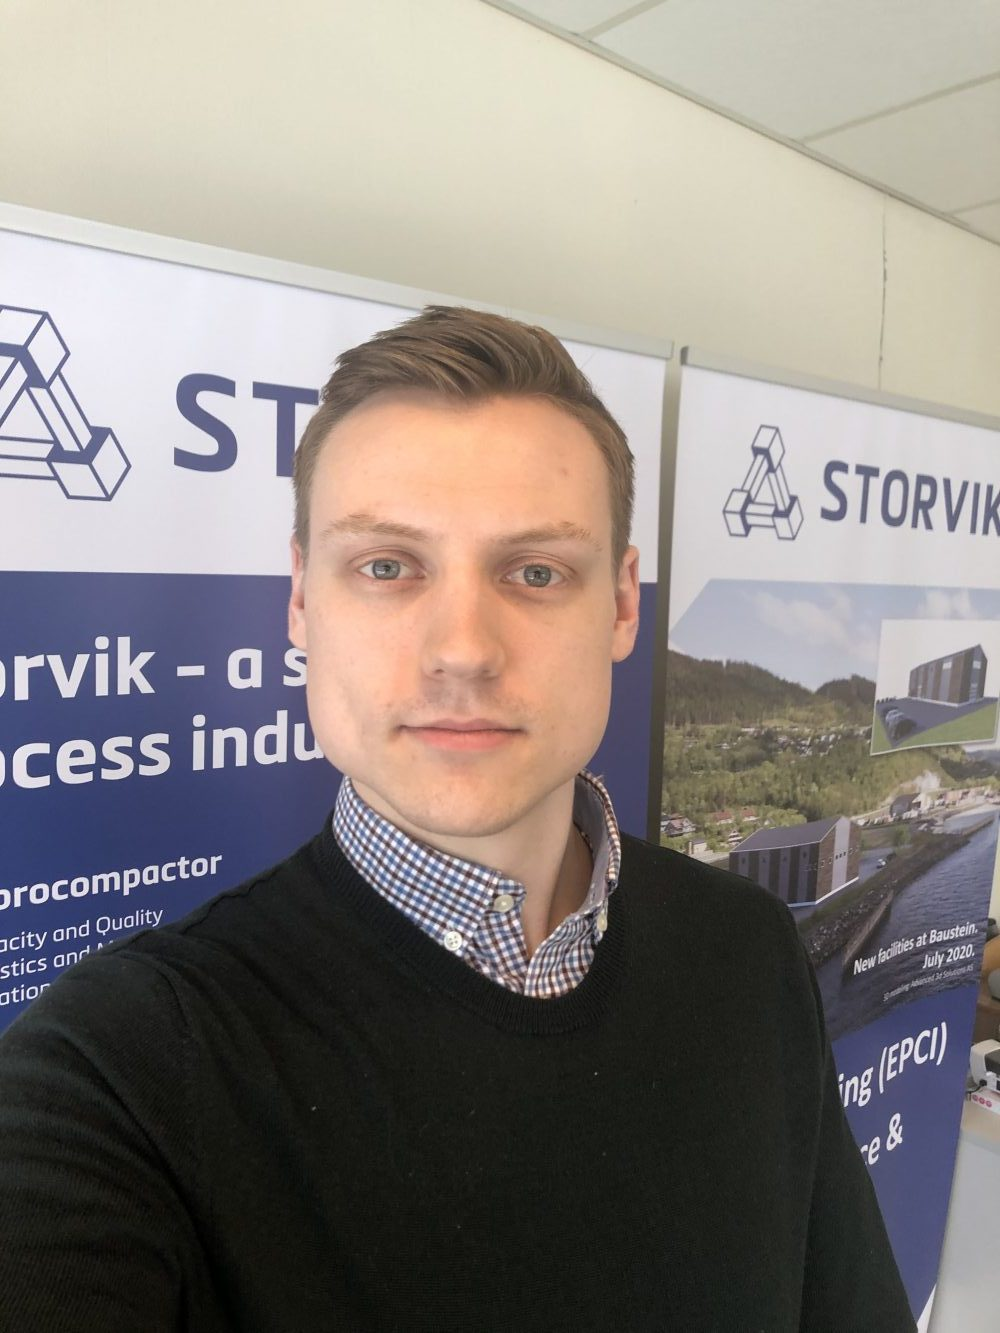 Bjarte Valåmo – new Manager for Storvik in Mosjøen